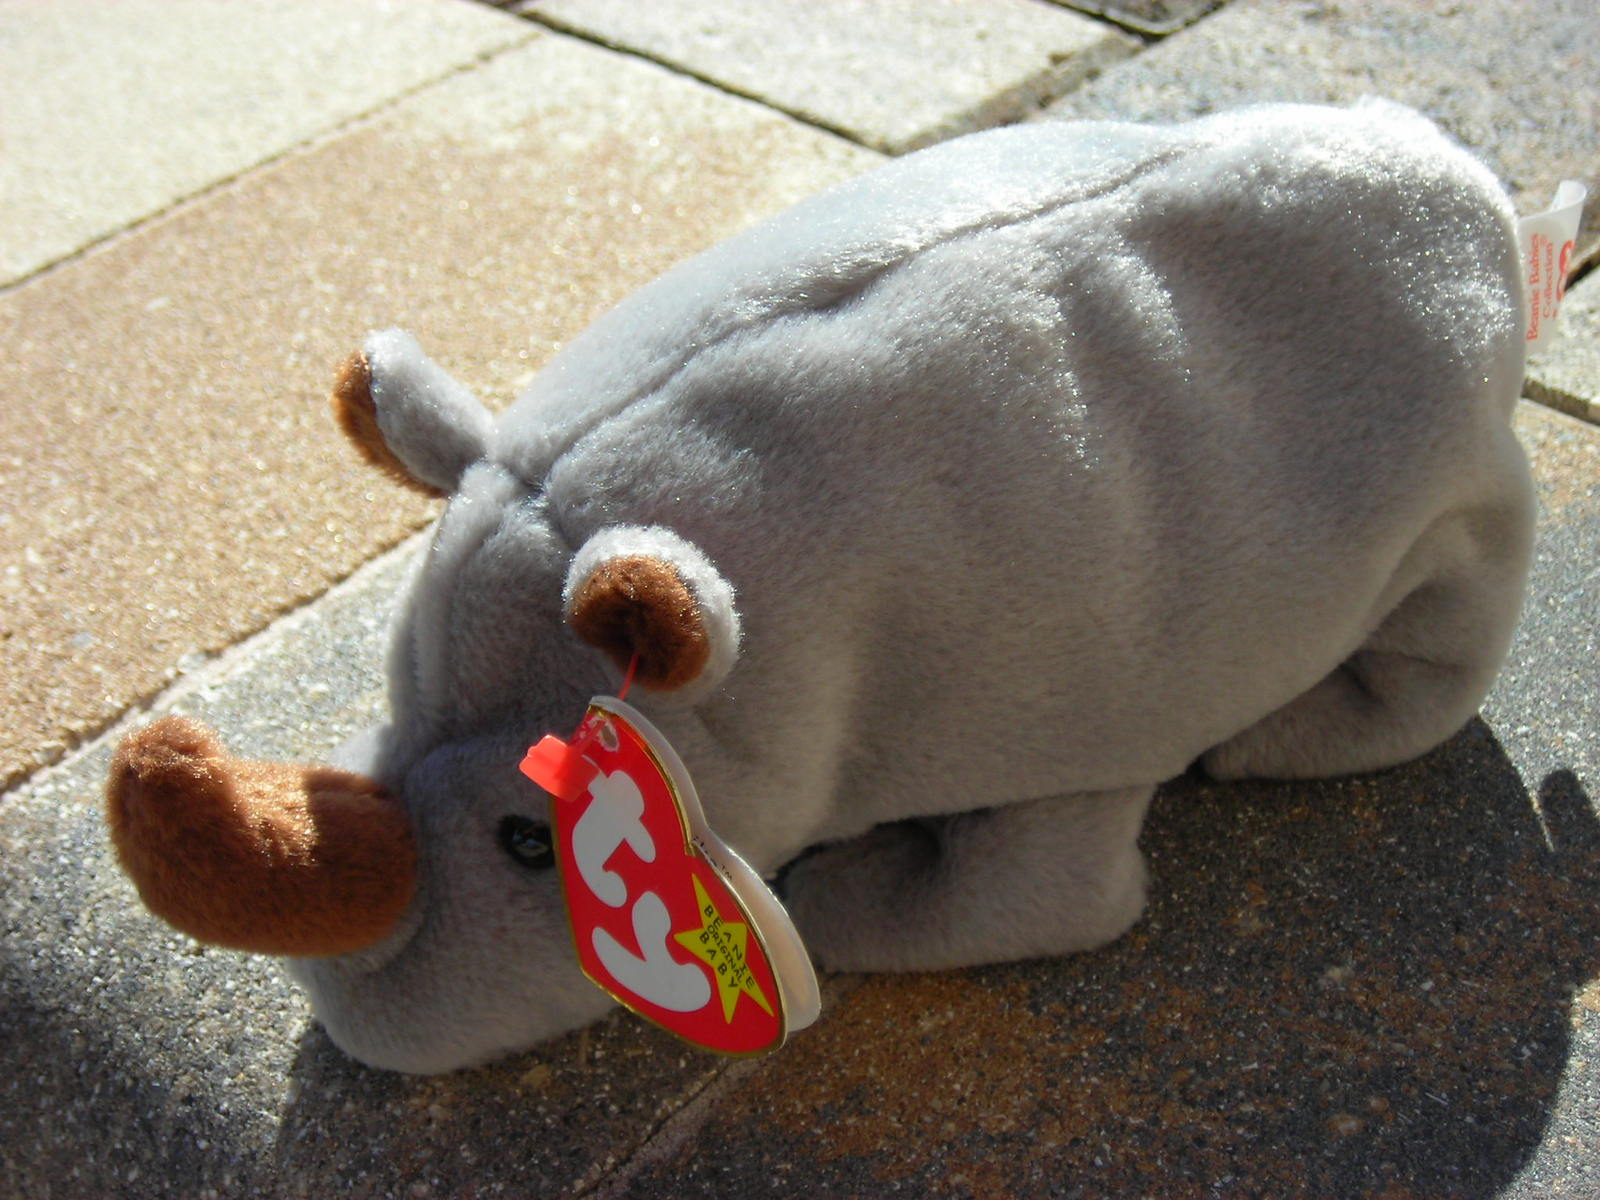 0788443c0ce Beanie Babies Baby TY Spike the Rhino Grey and 40 similar items. Dscn2160